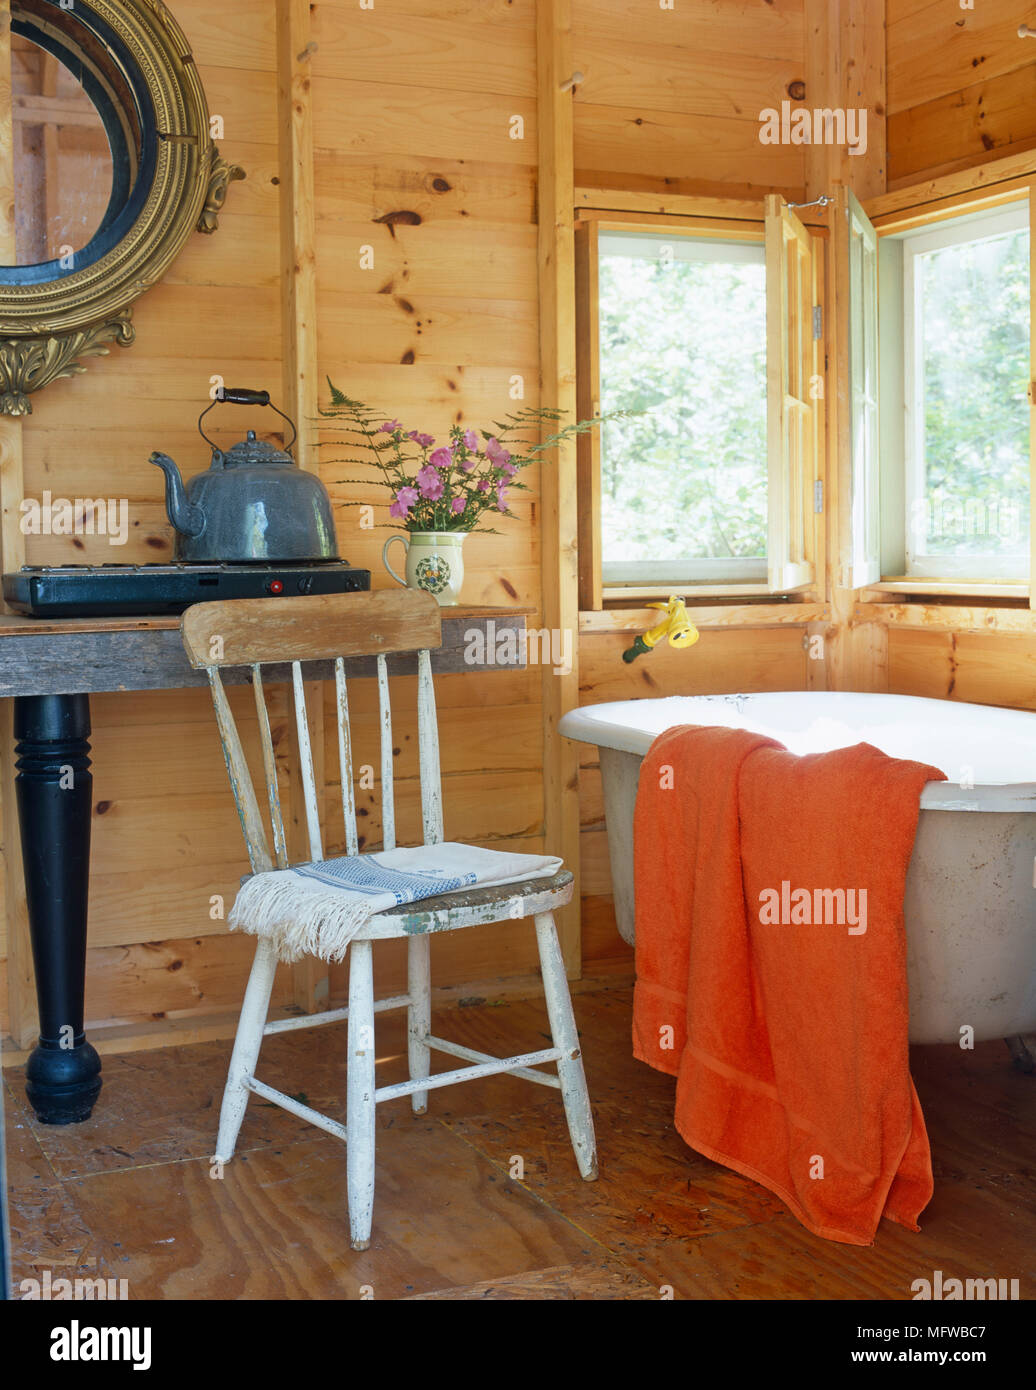 Rustic wooden chair next to old fashioned roll top bathtub Stock ...